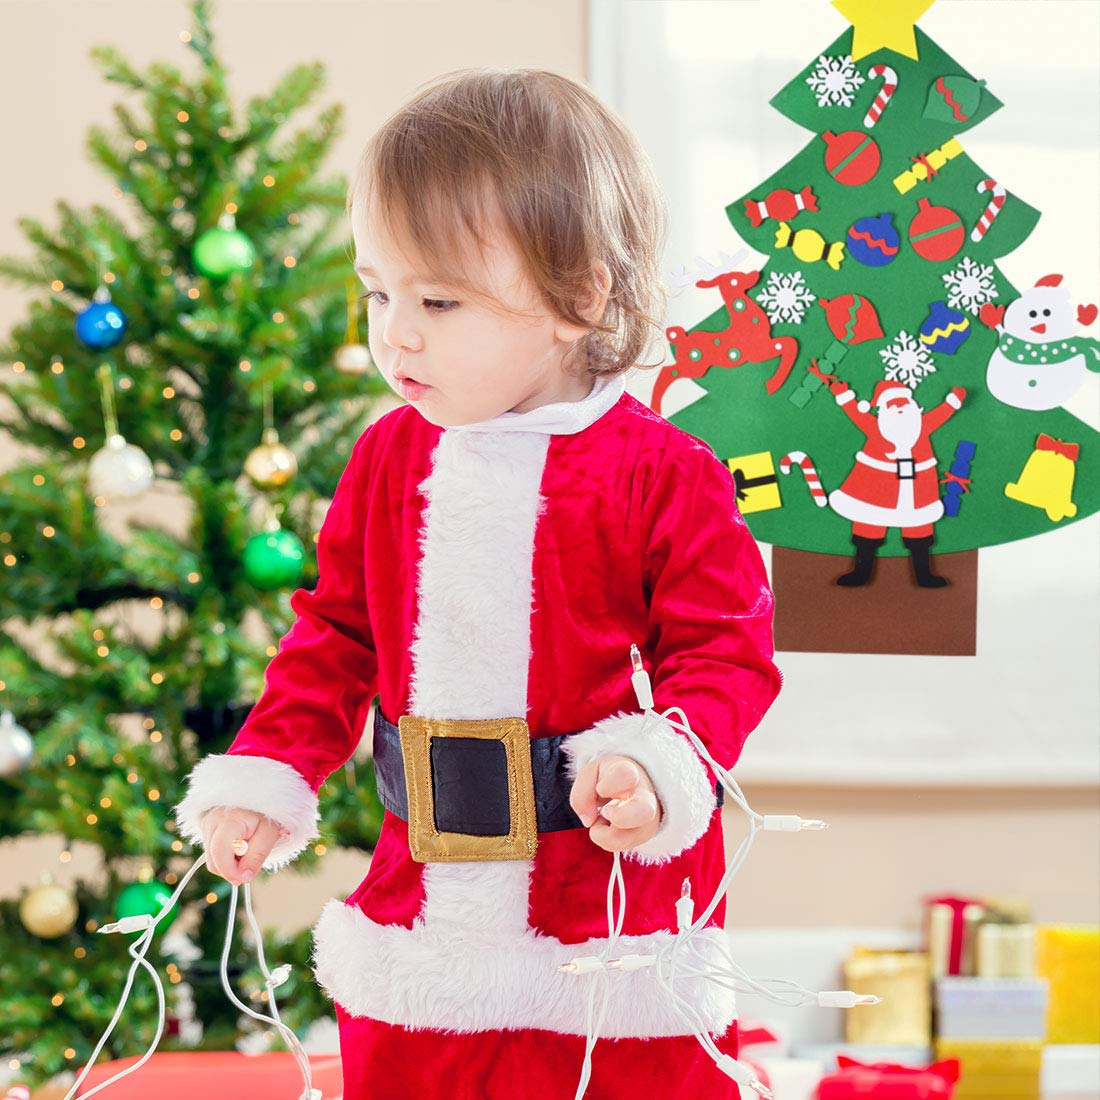 MGparty DIY Felt Christmas Tree, 3.1 Ft Christmas Tree Ornaments Wall Decor with Hanging Rope for Kids Xmas Gifts Home Door Decorations